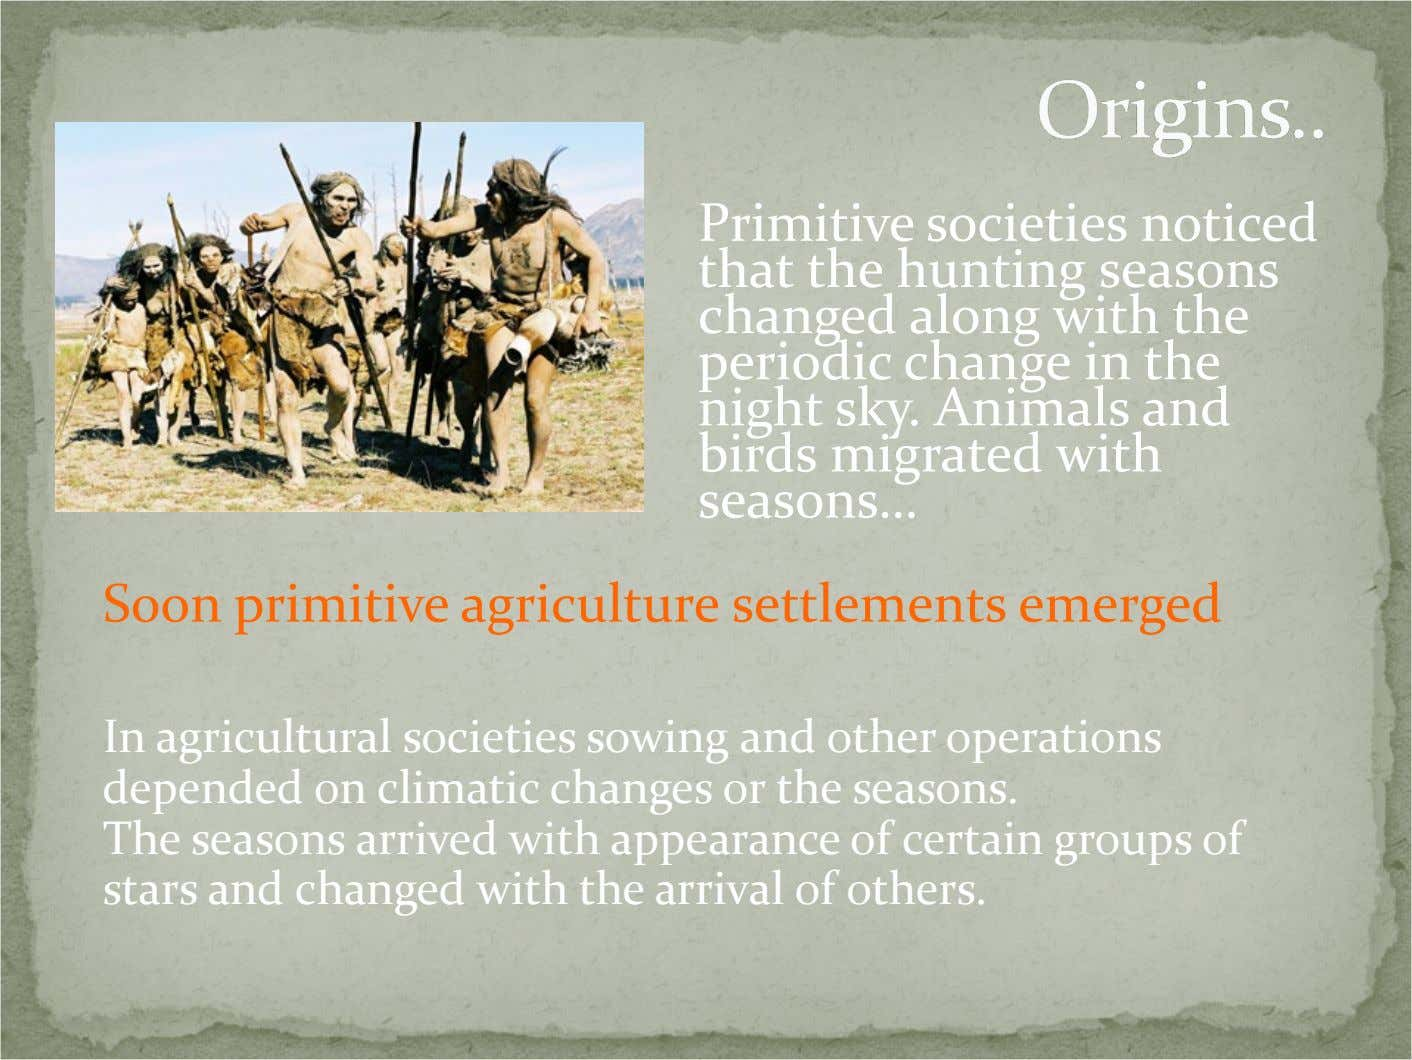 Primitive societies noticed that the hunting seasons changed along with the periodic change in the